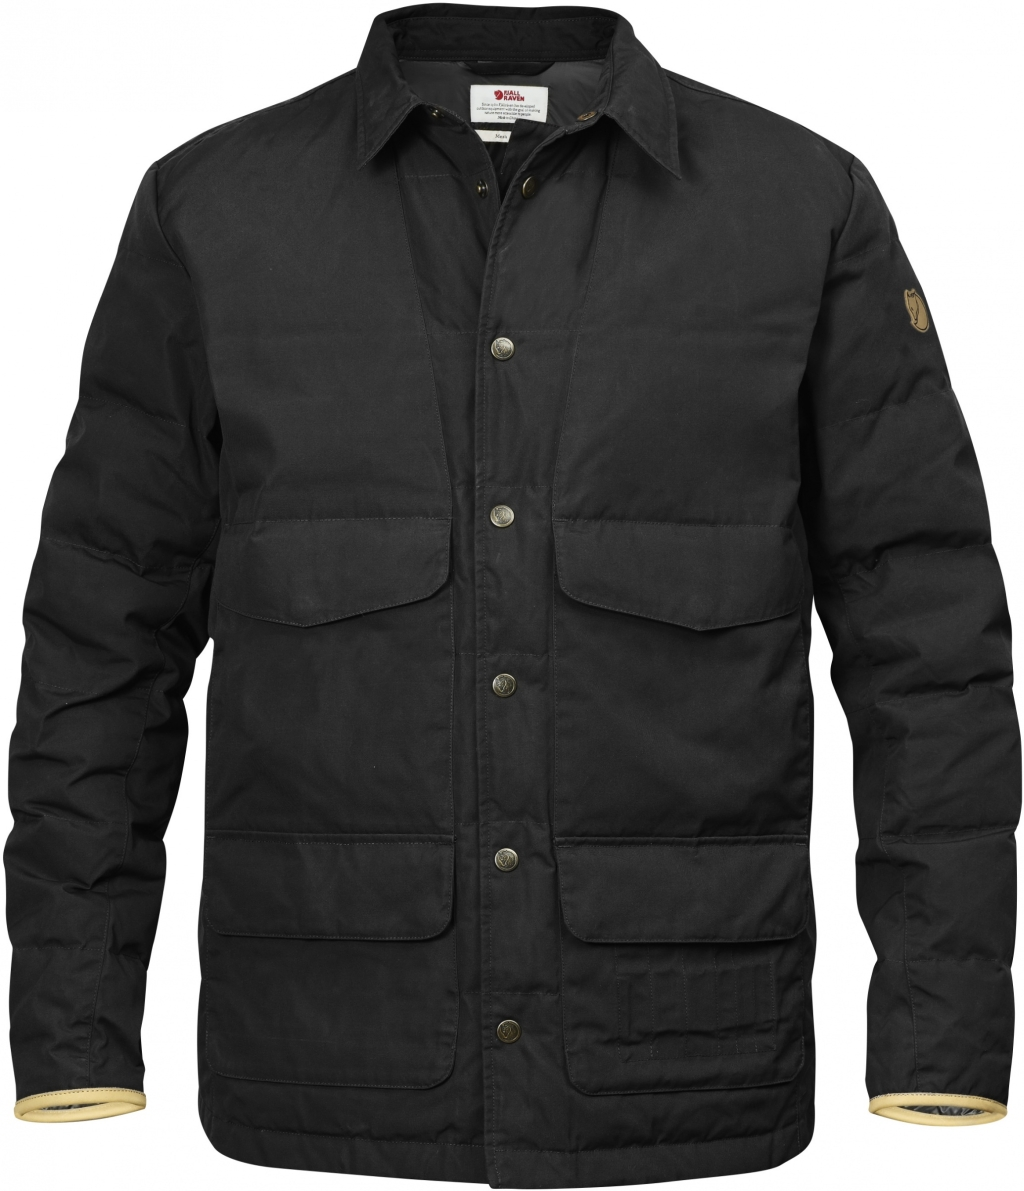 FjallRaven Sormland Down Shirt Jacket Dark Grey-30